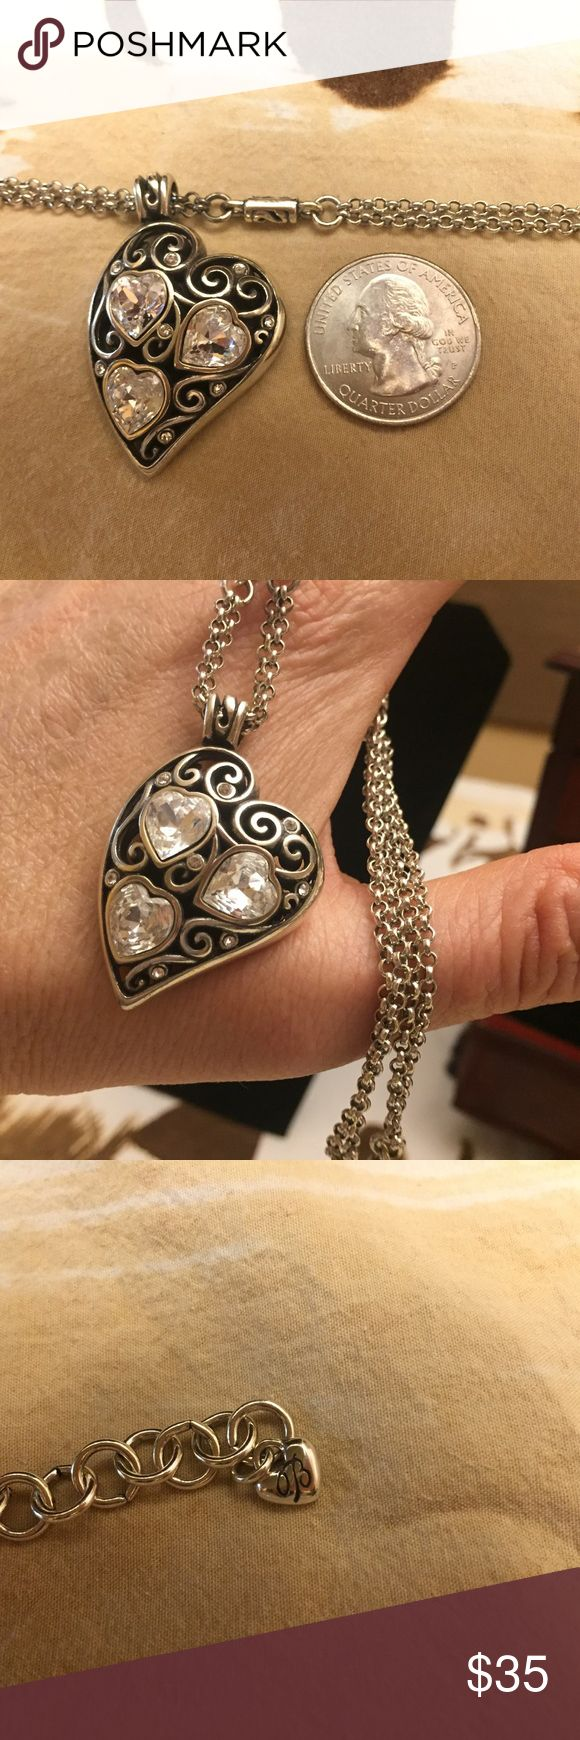 """Brighton Heart Necklace Lovely Brighton heart necklace.   Excellent used condition - 👌like new 👌 (no damage noted).   16"""" plus 3"""" extender.   Front has crystal hearts and dots.   Back and other details are shown in pictures! Brighton Jewelry Necklaces"""